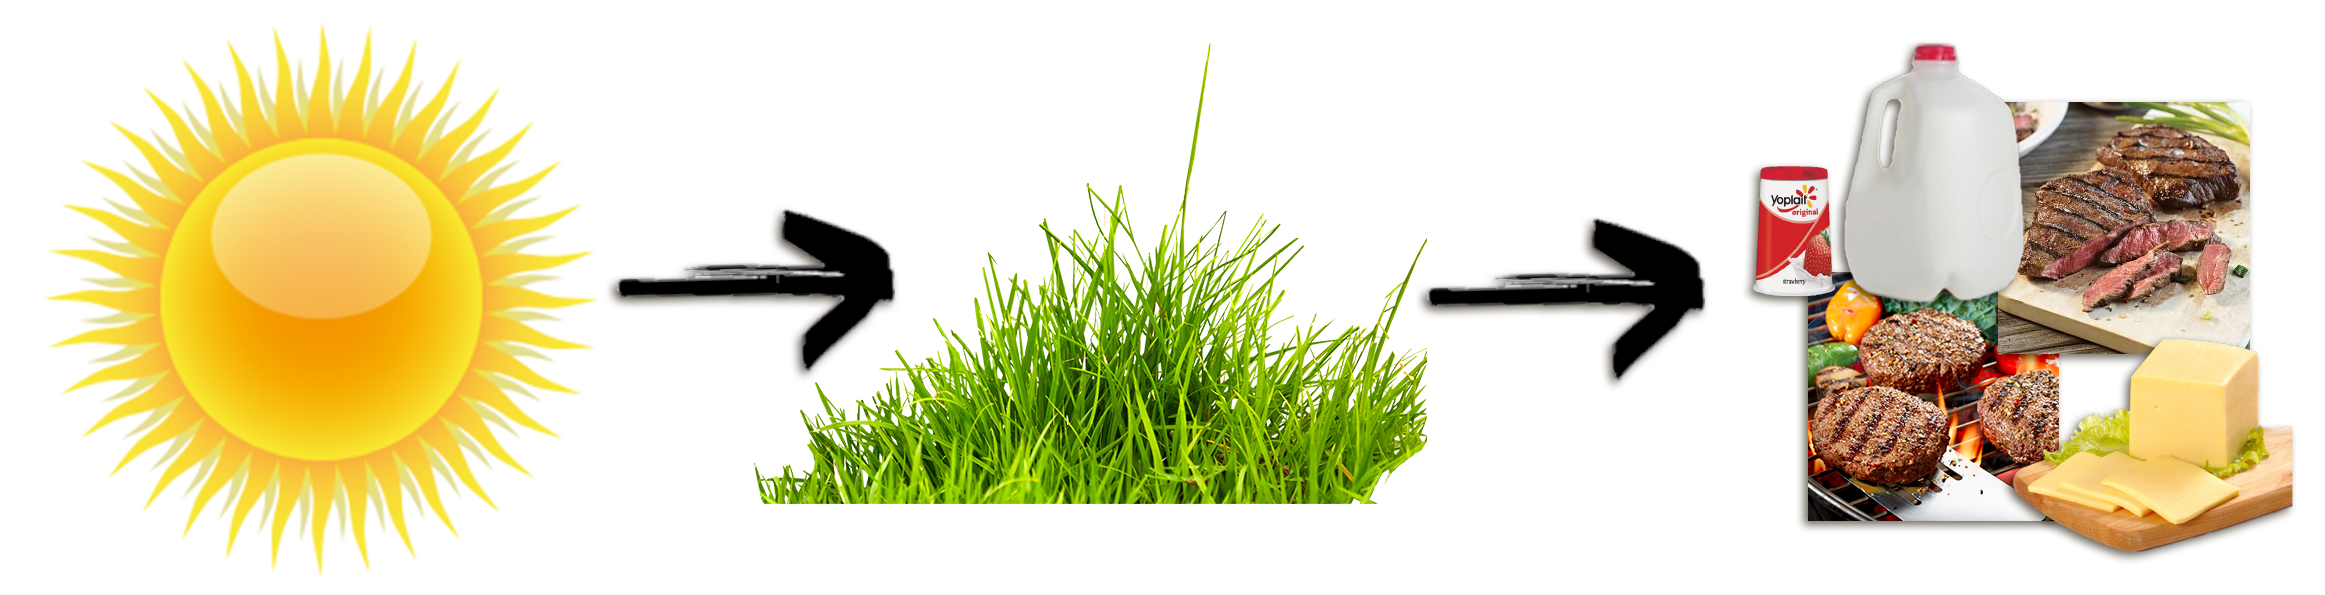 The remarkable ruminant energy. Clipart grass forage